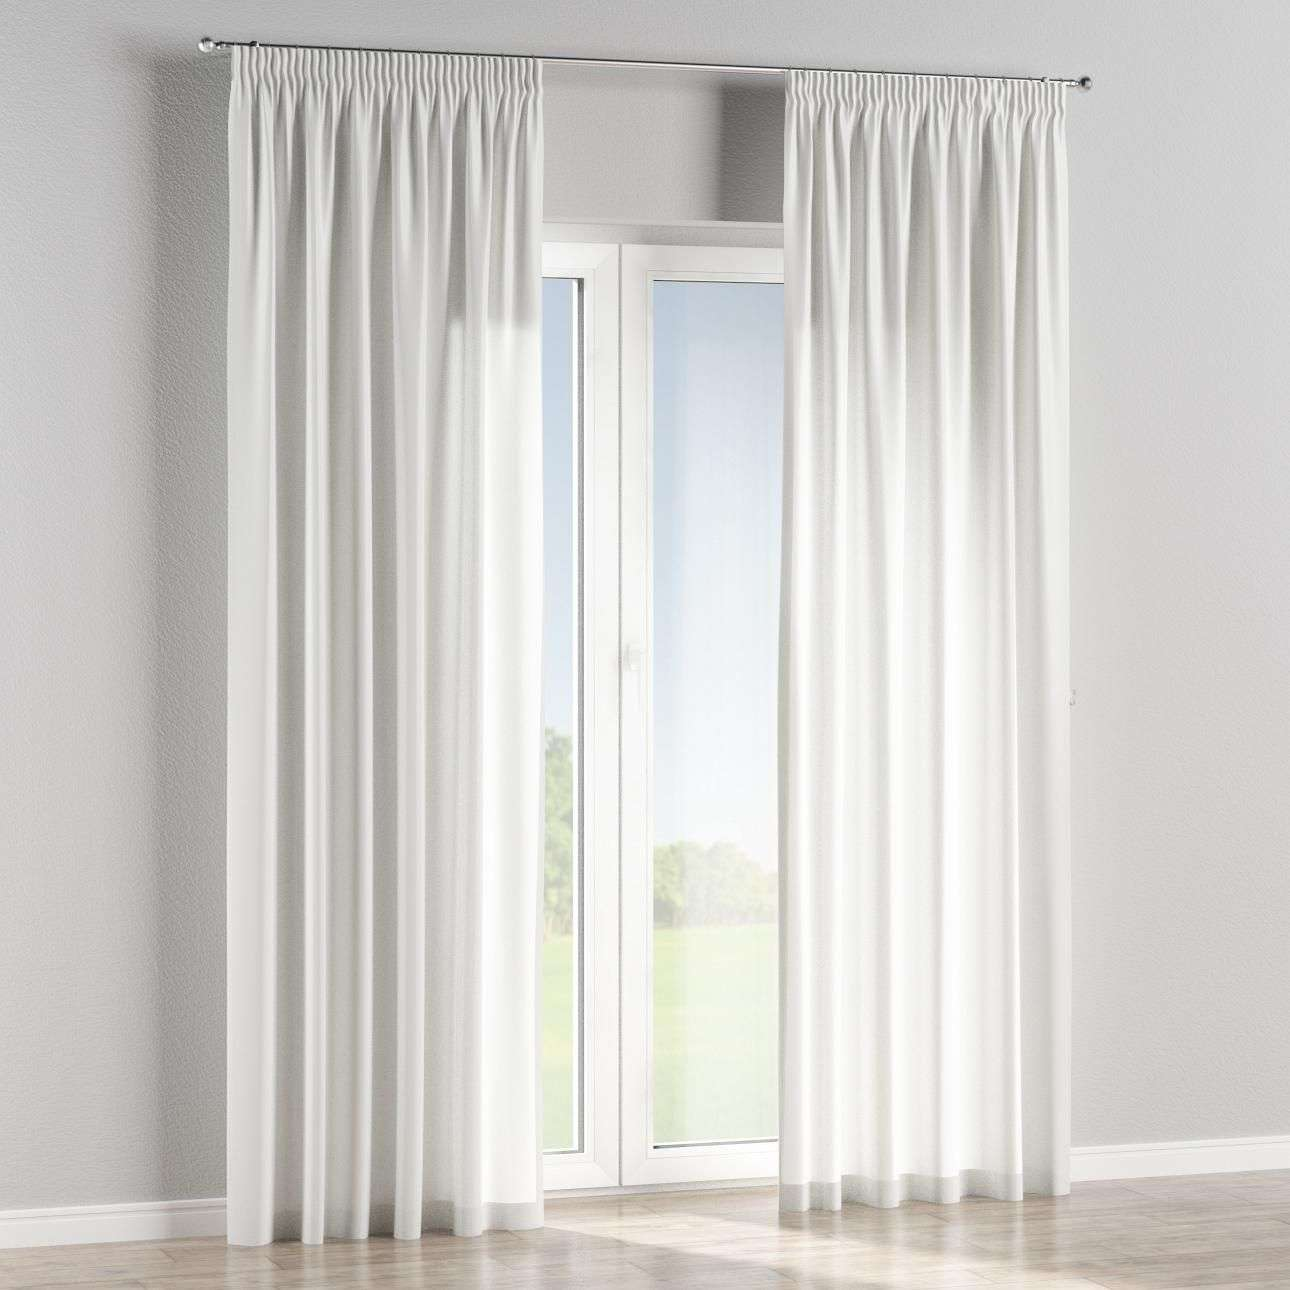 Pencil pleat lined curtains in collection Marina, fabric: 140-13